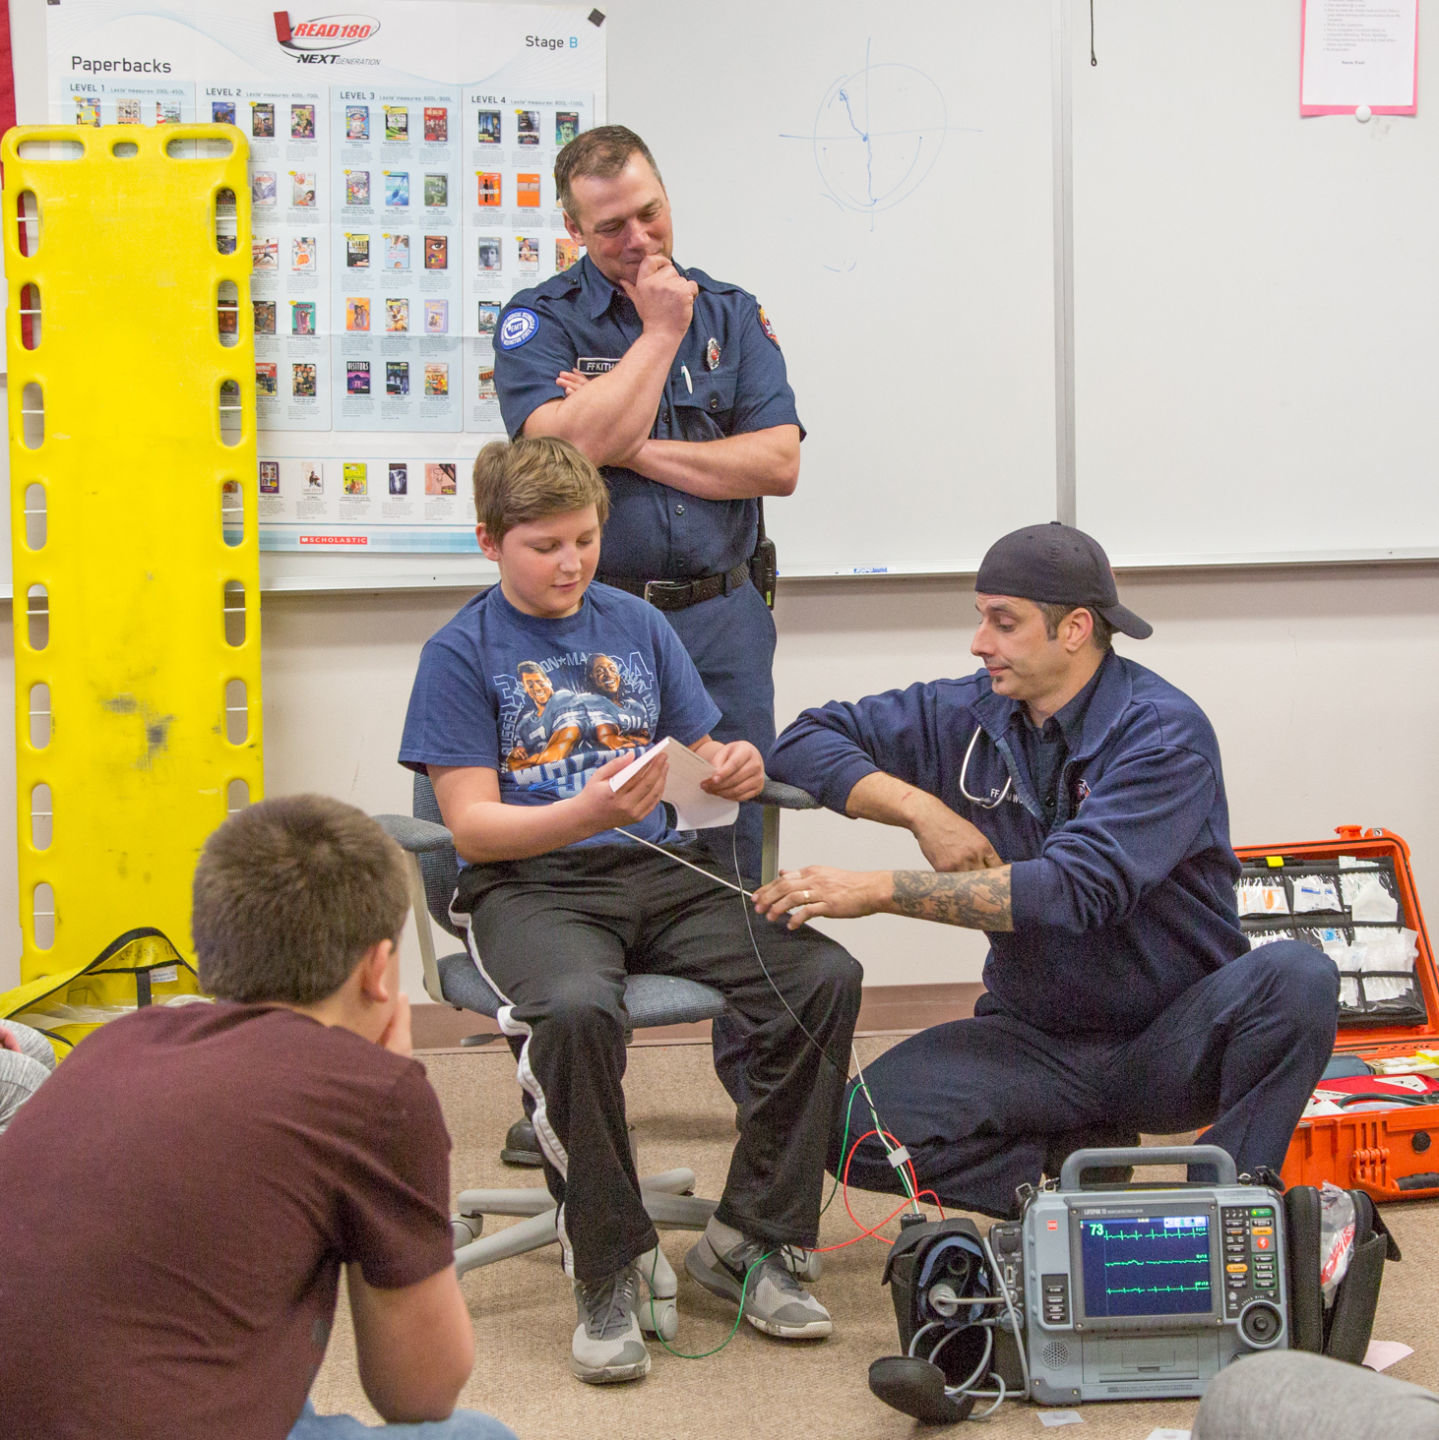 East Jefferson Fire Rescue Firefighters Mike Kithcart (standing) and Jeff Woods (kneeling) demonstrate administering an EKG with the help of student Conner Kerezsi. Photos courtesy Mitchel Osborne Photography